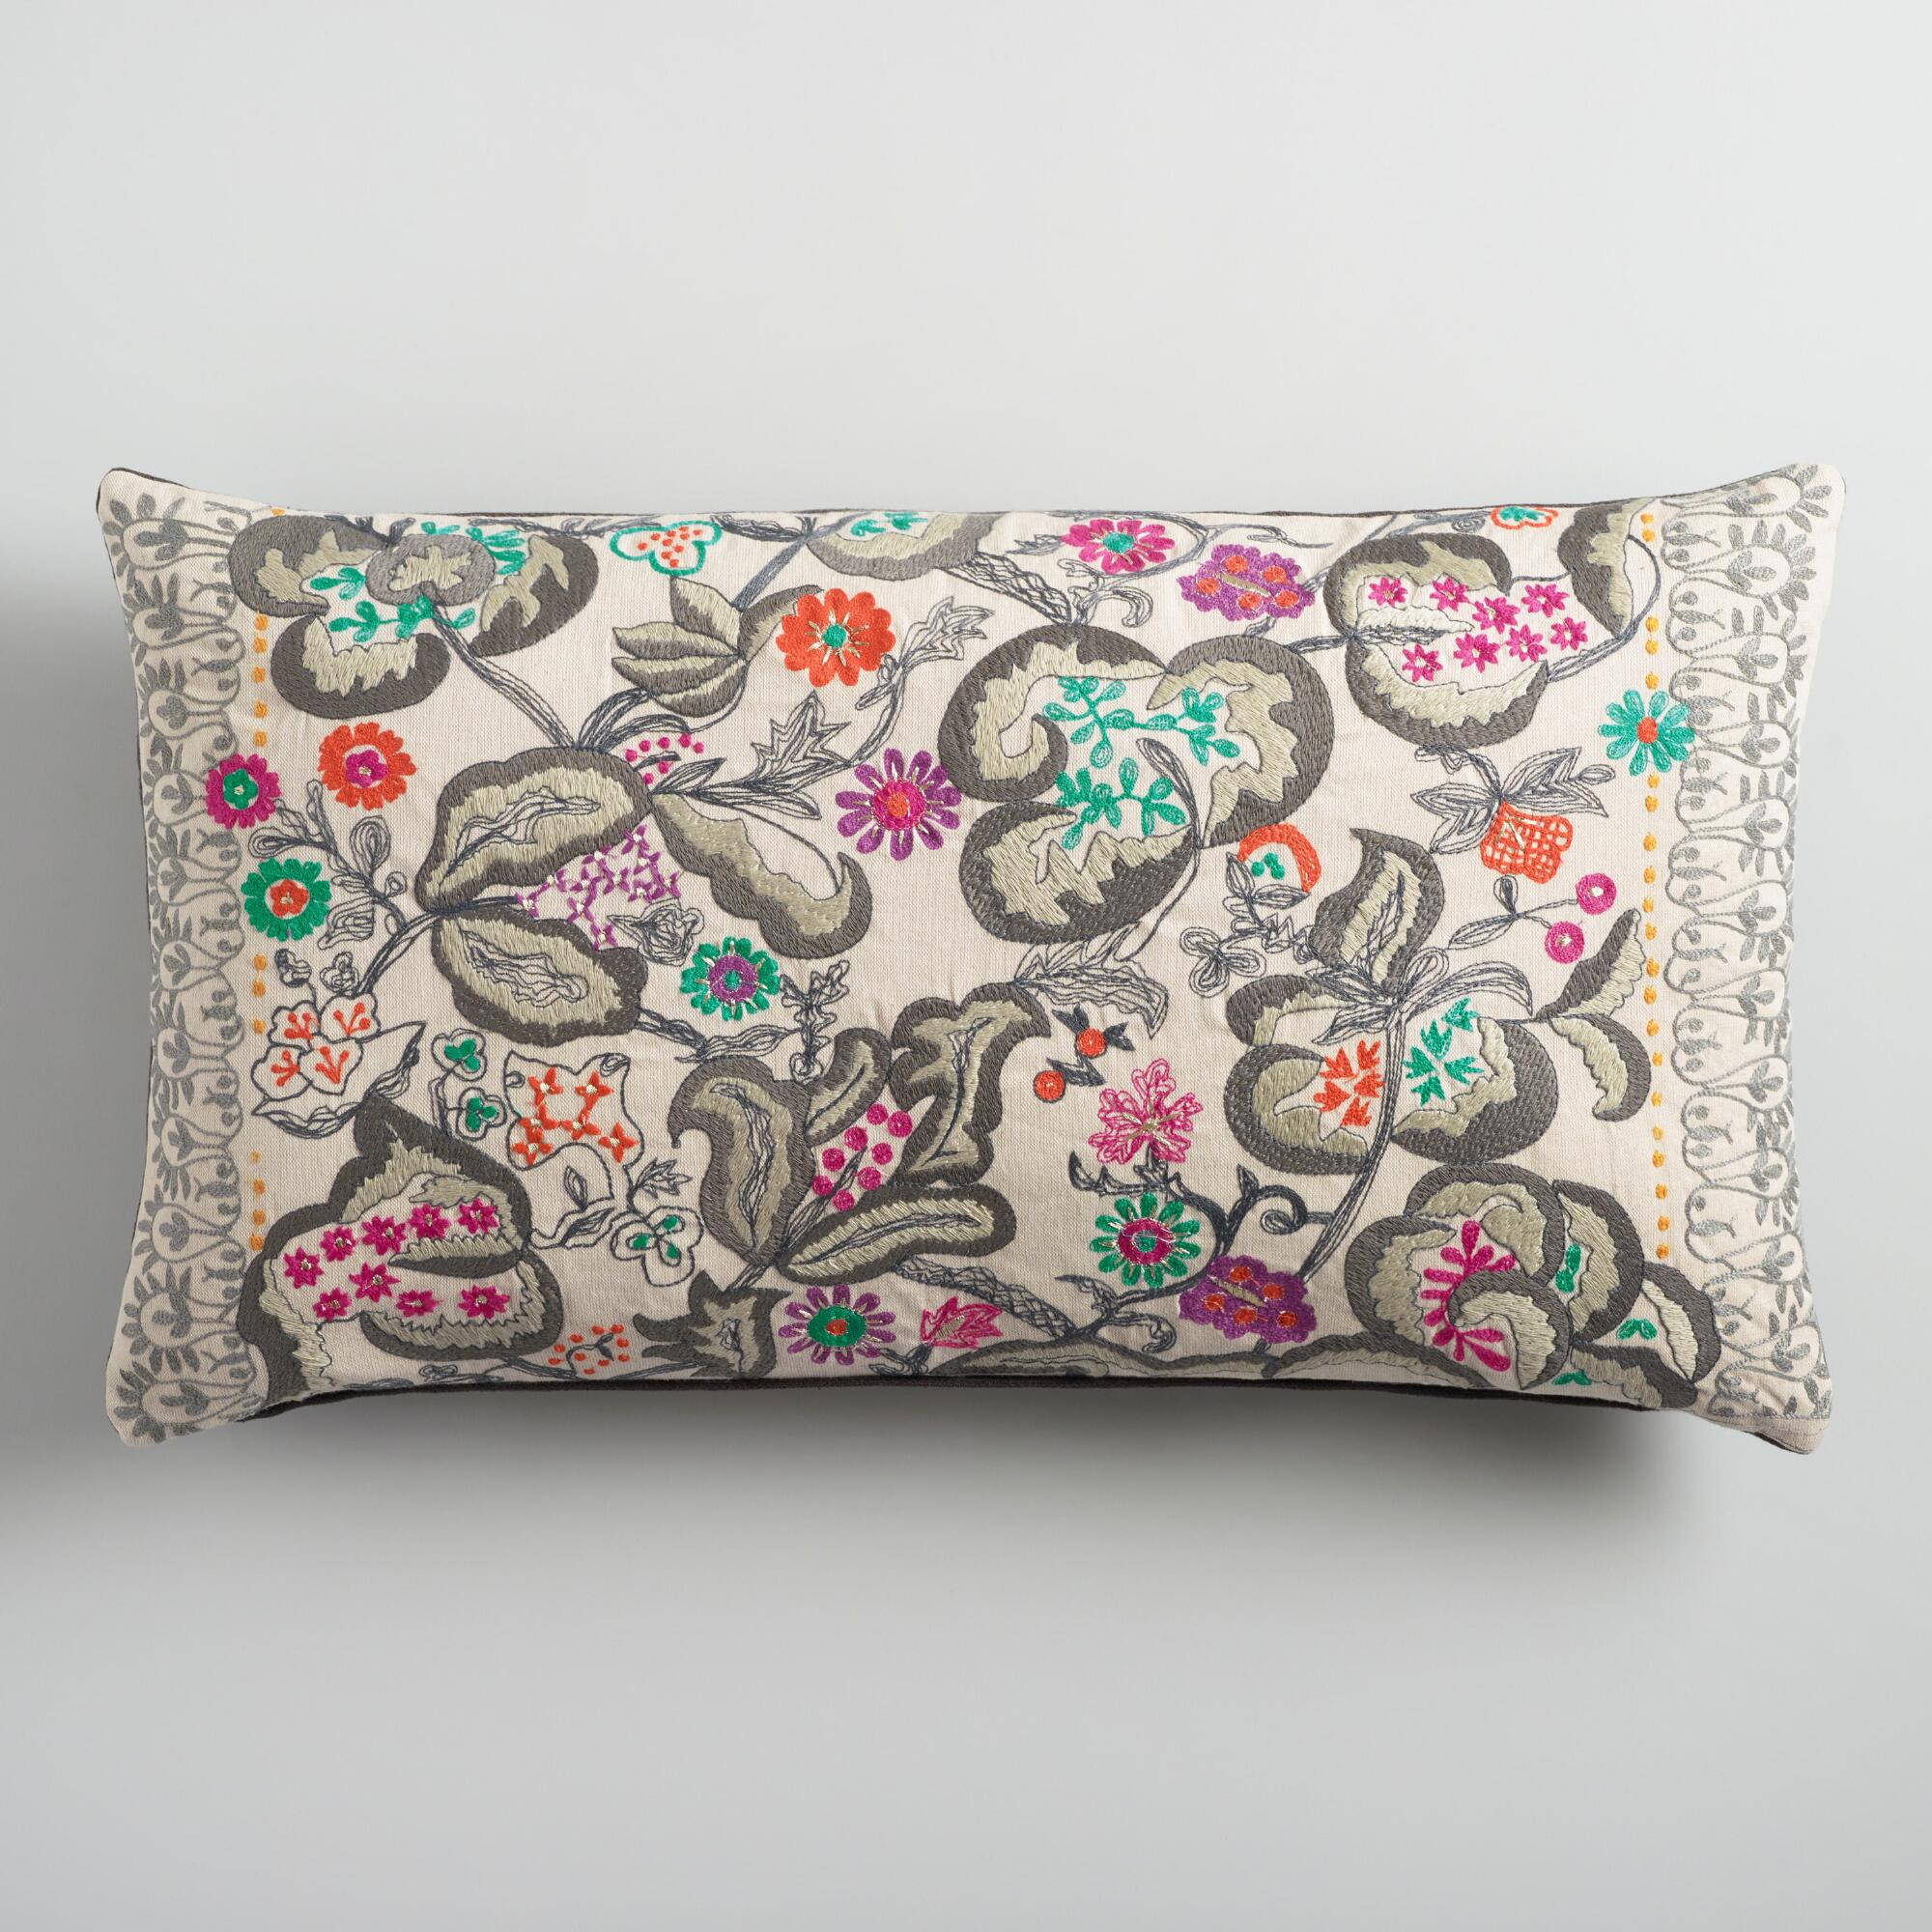 Oversized Embroidered Fantasy Floral Lumbar Pillow World